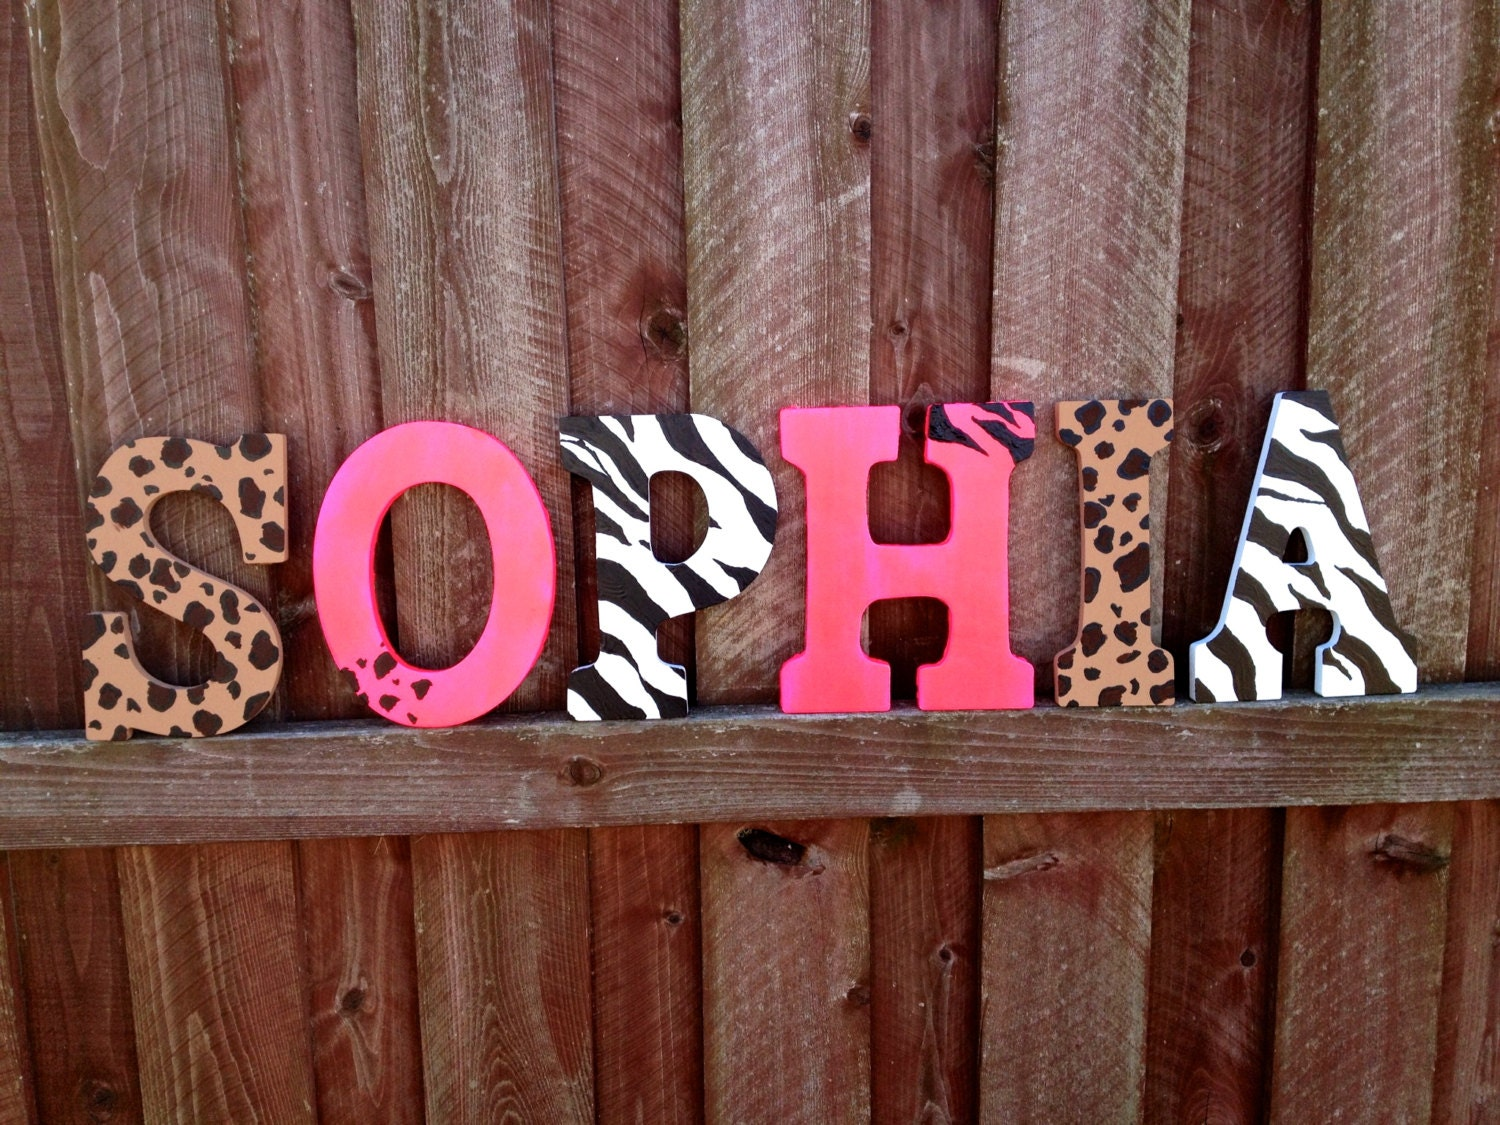 9 cheetah hot pink zebra wall hanging letters by for Shoulder decoration 9 letters